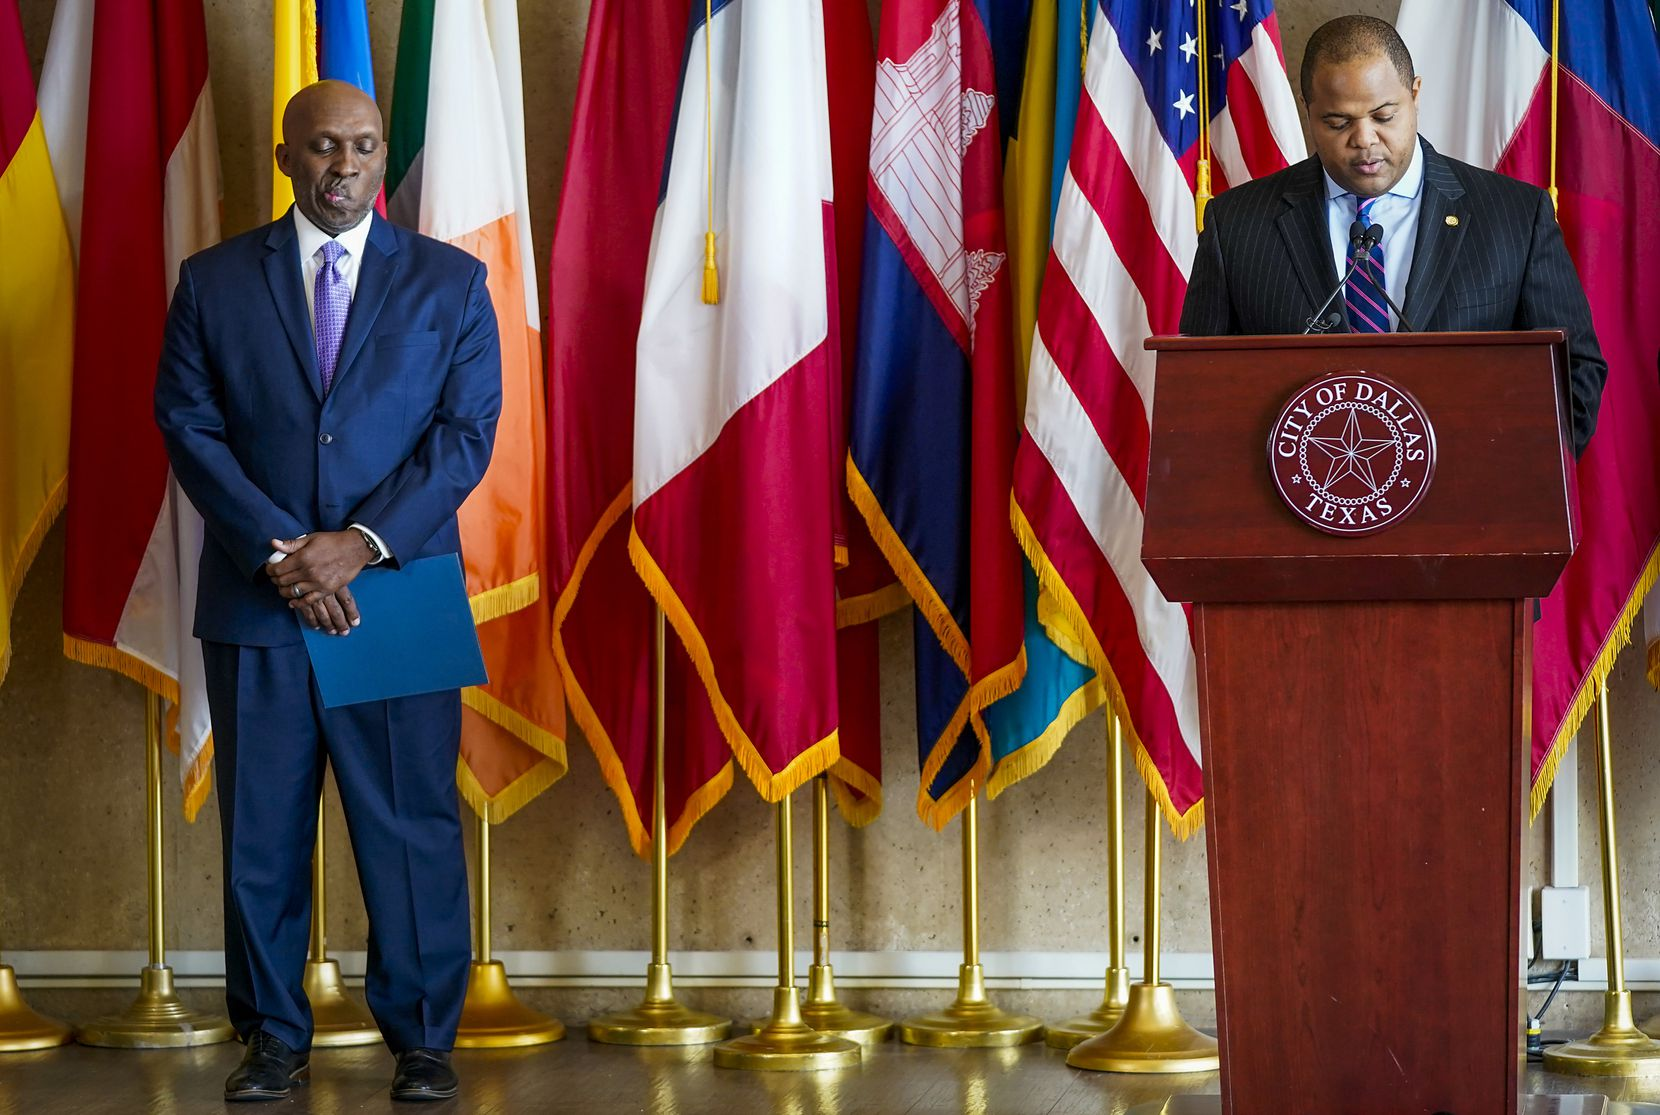 Dallas city manager T.C. Broadnax (left) listens as Dallas Mayor Eric Johnson announces changes in response to the coronavirus during a press conference at City Hall on March 16, 2020. Broadnax is in charge of delivering a budget proposal to the City Council, which will ultimately vote on a version of its liking later this month.